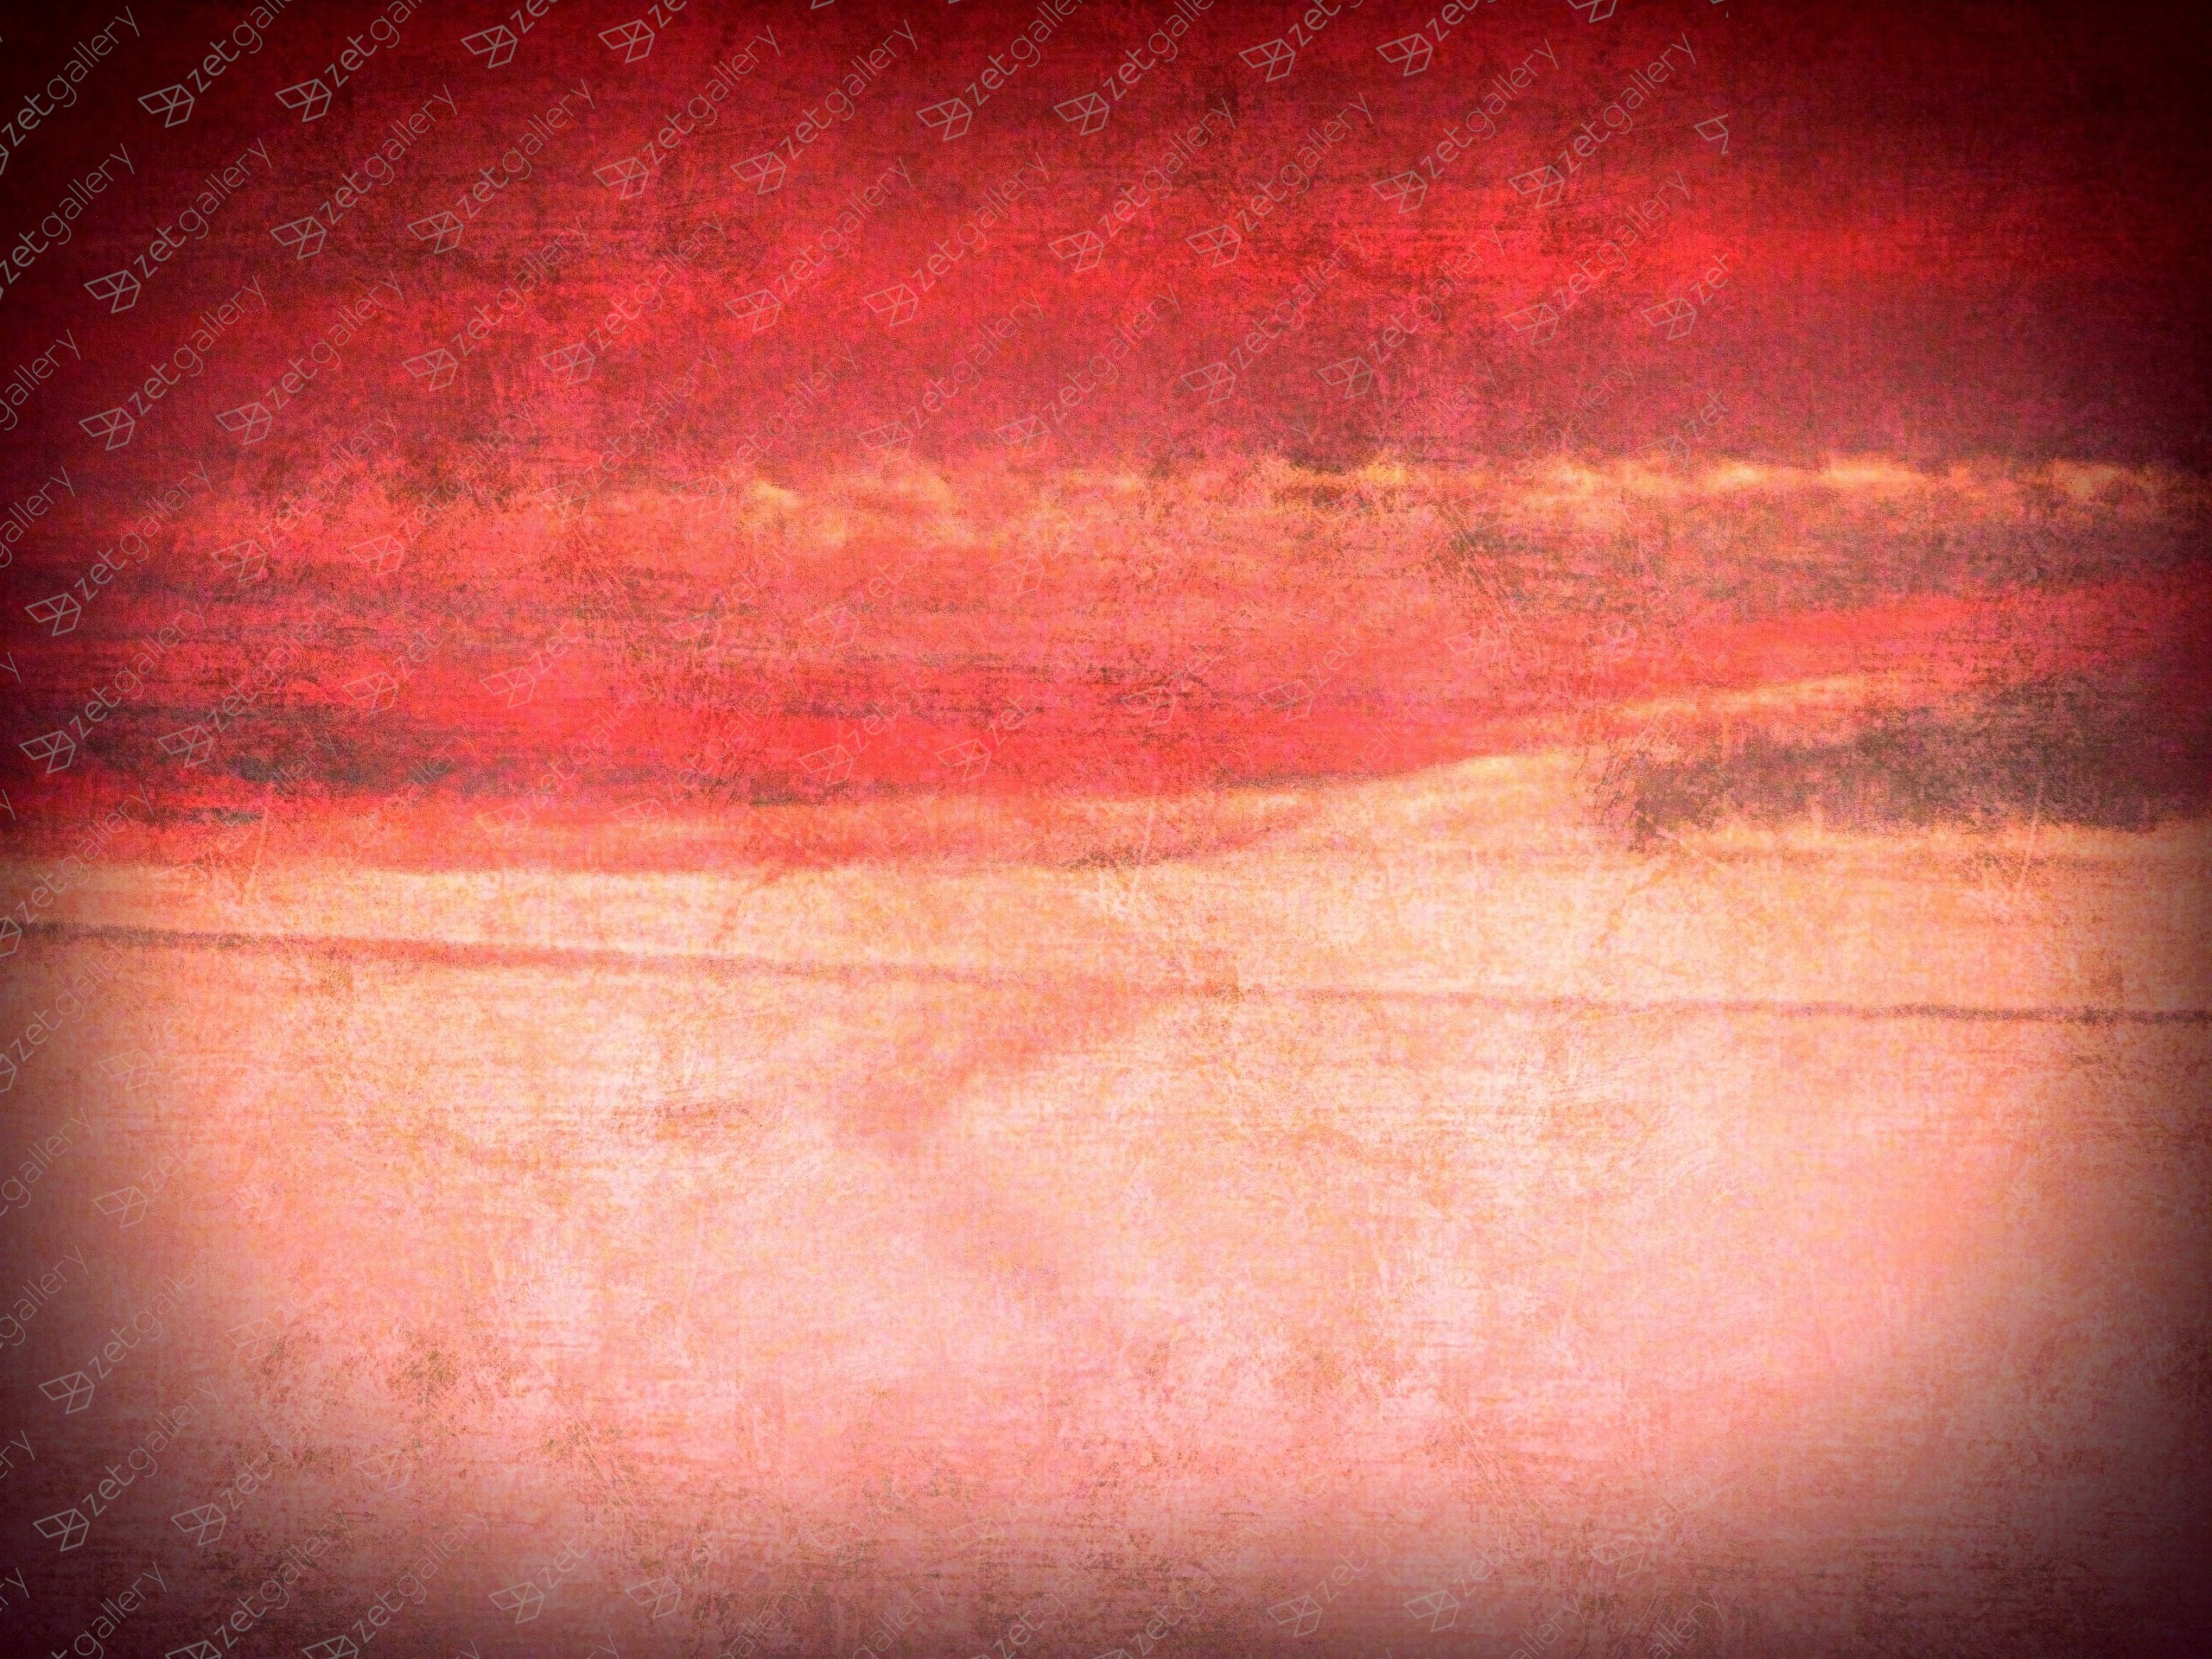 no.64 from collection march 16, Fotografia Digital Abstrato original por Magdalena Kaczmarczyk